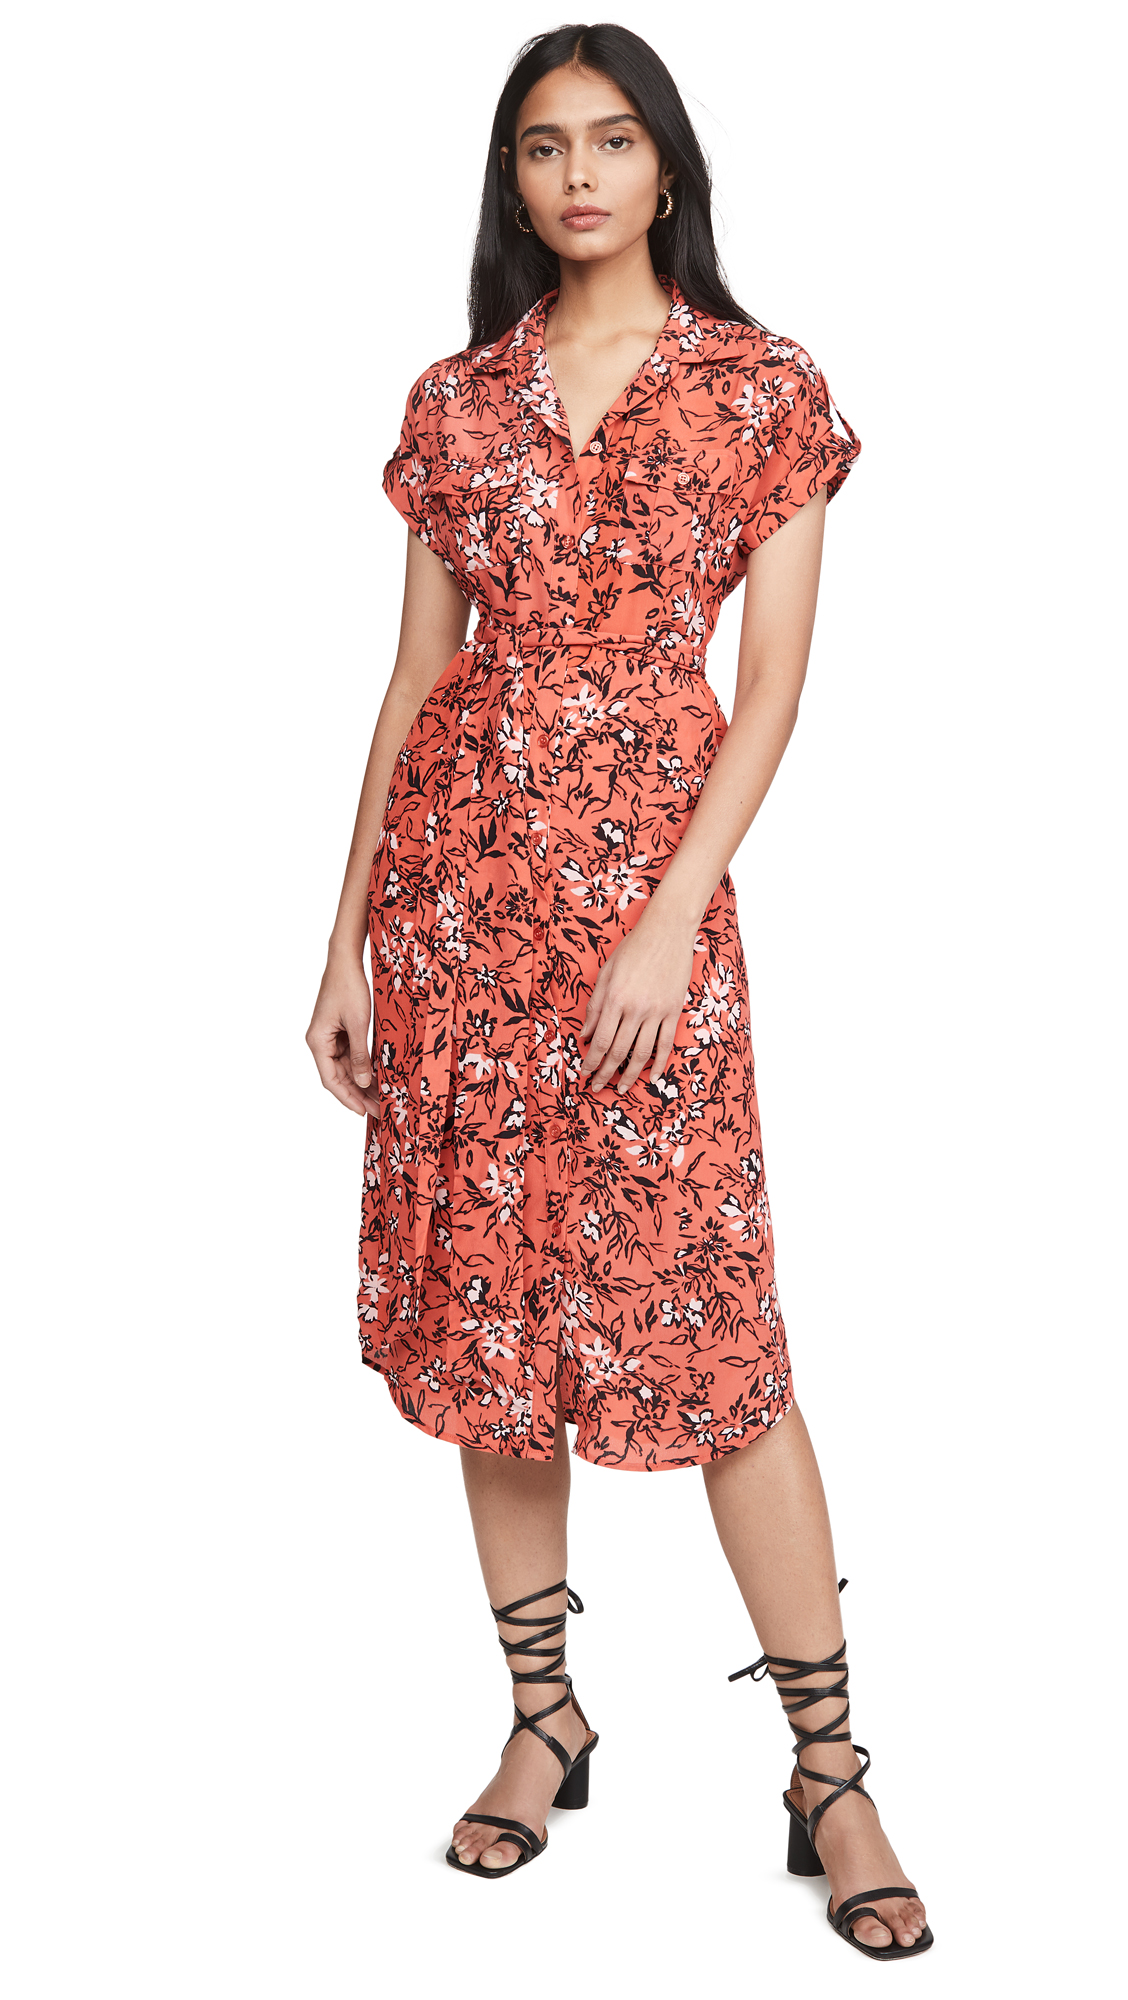 Yumi Kim Signature Shirtdress - 30% Off Sale